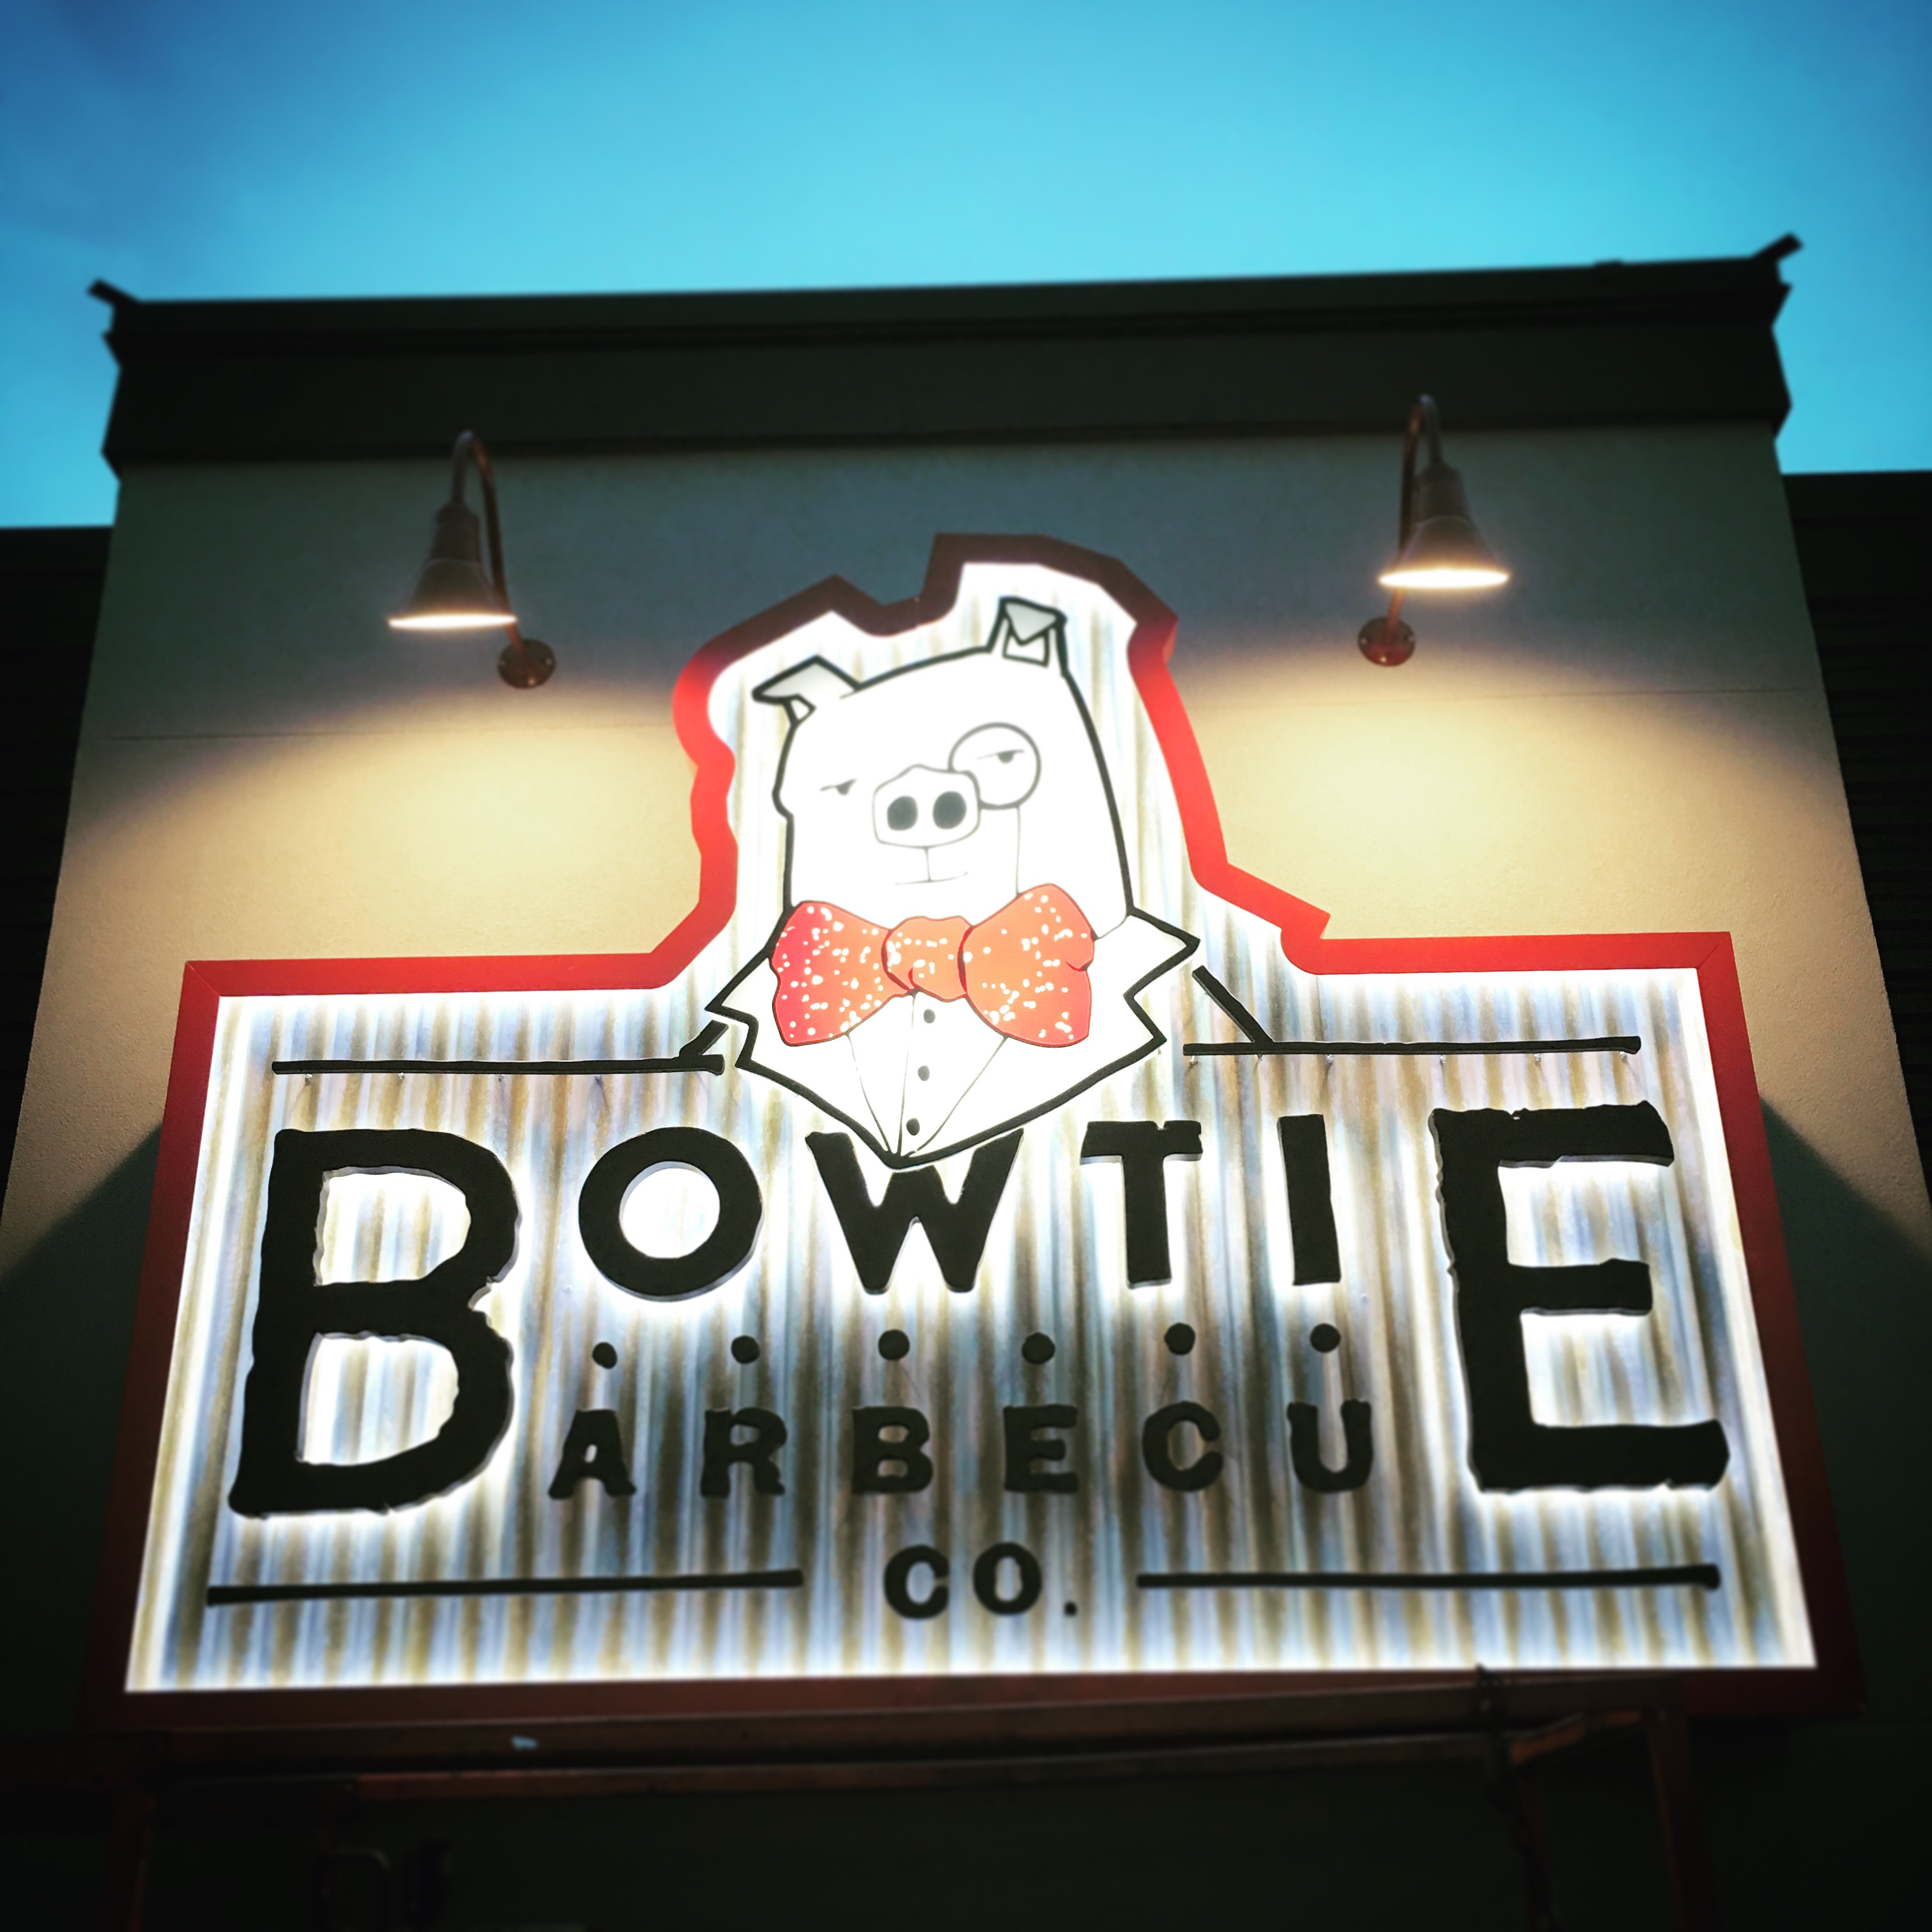 Bowtie BBQ Co. opened in September